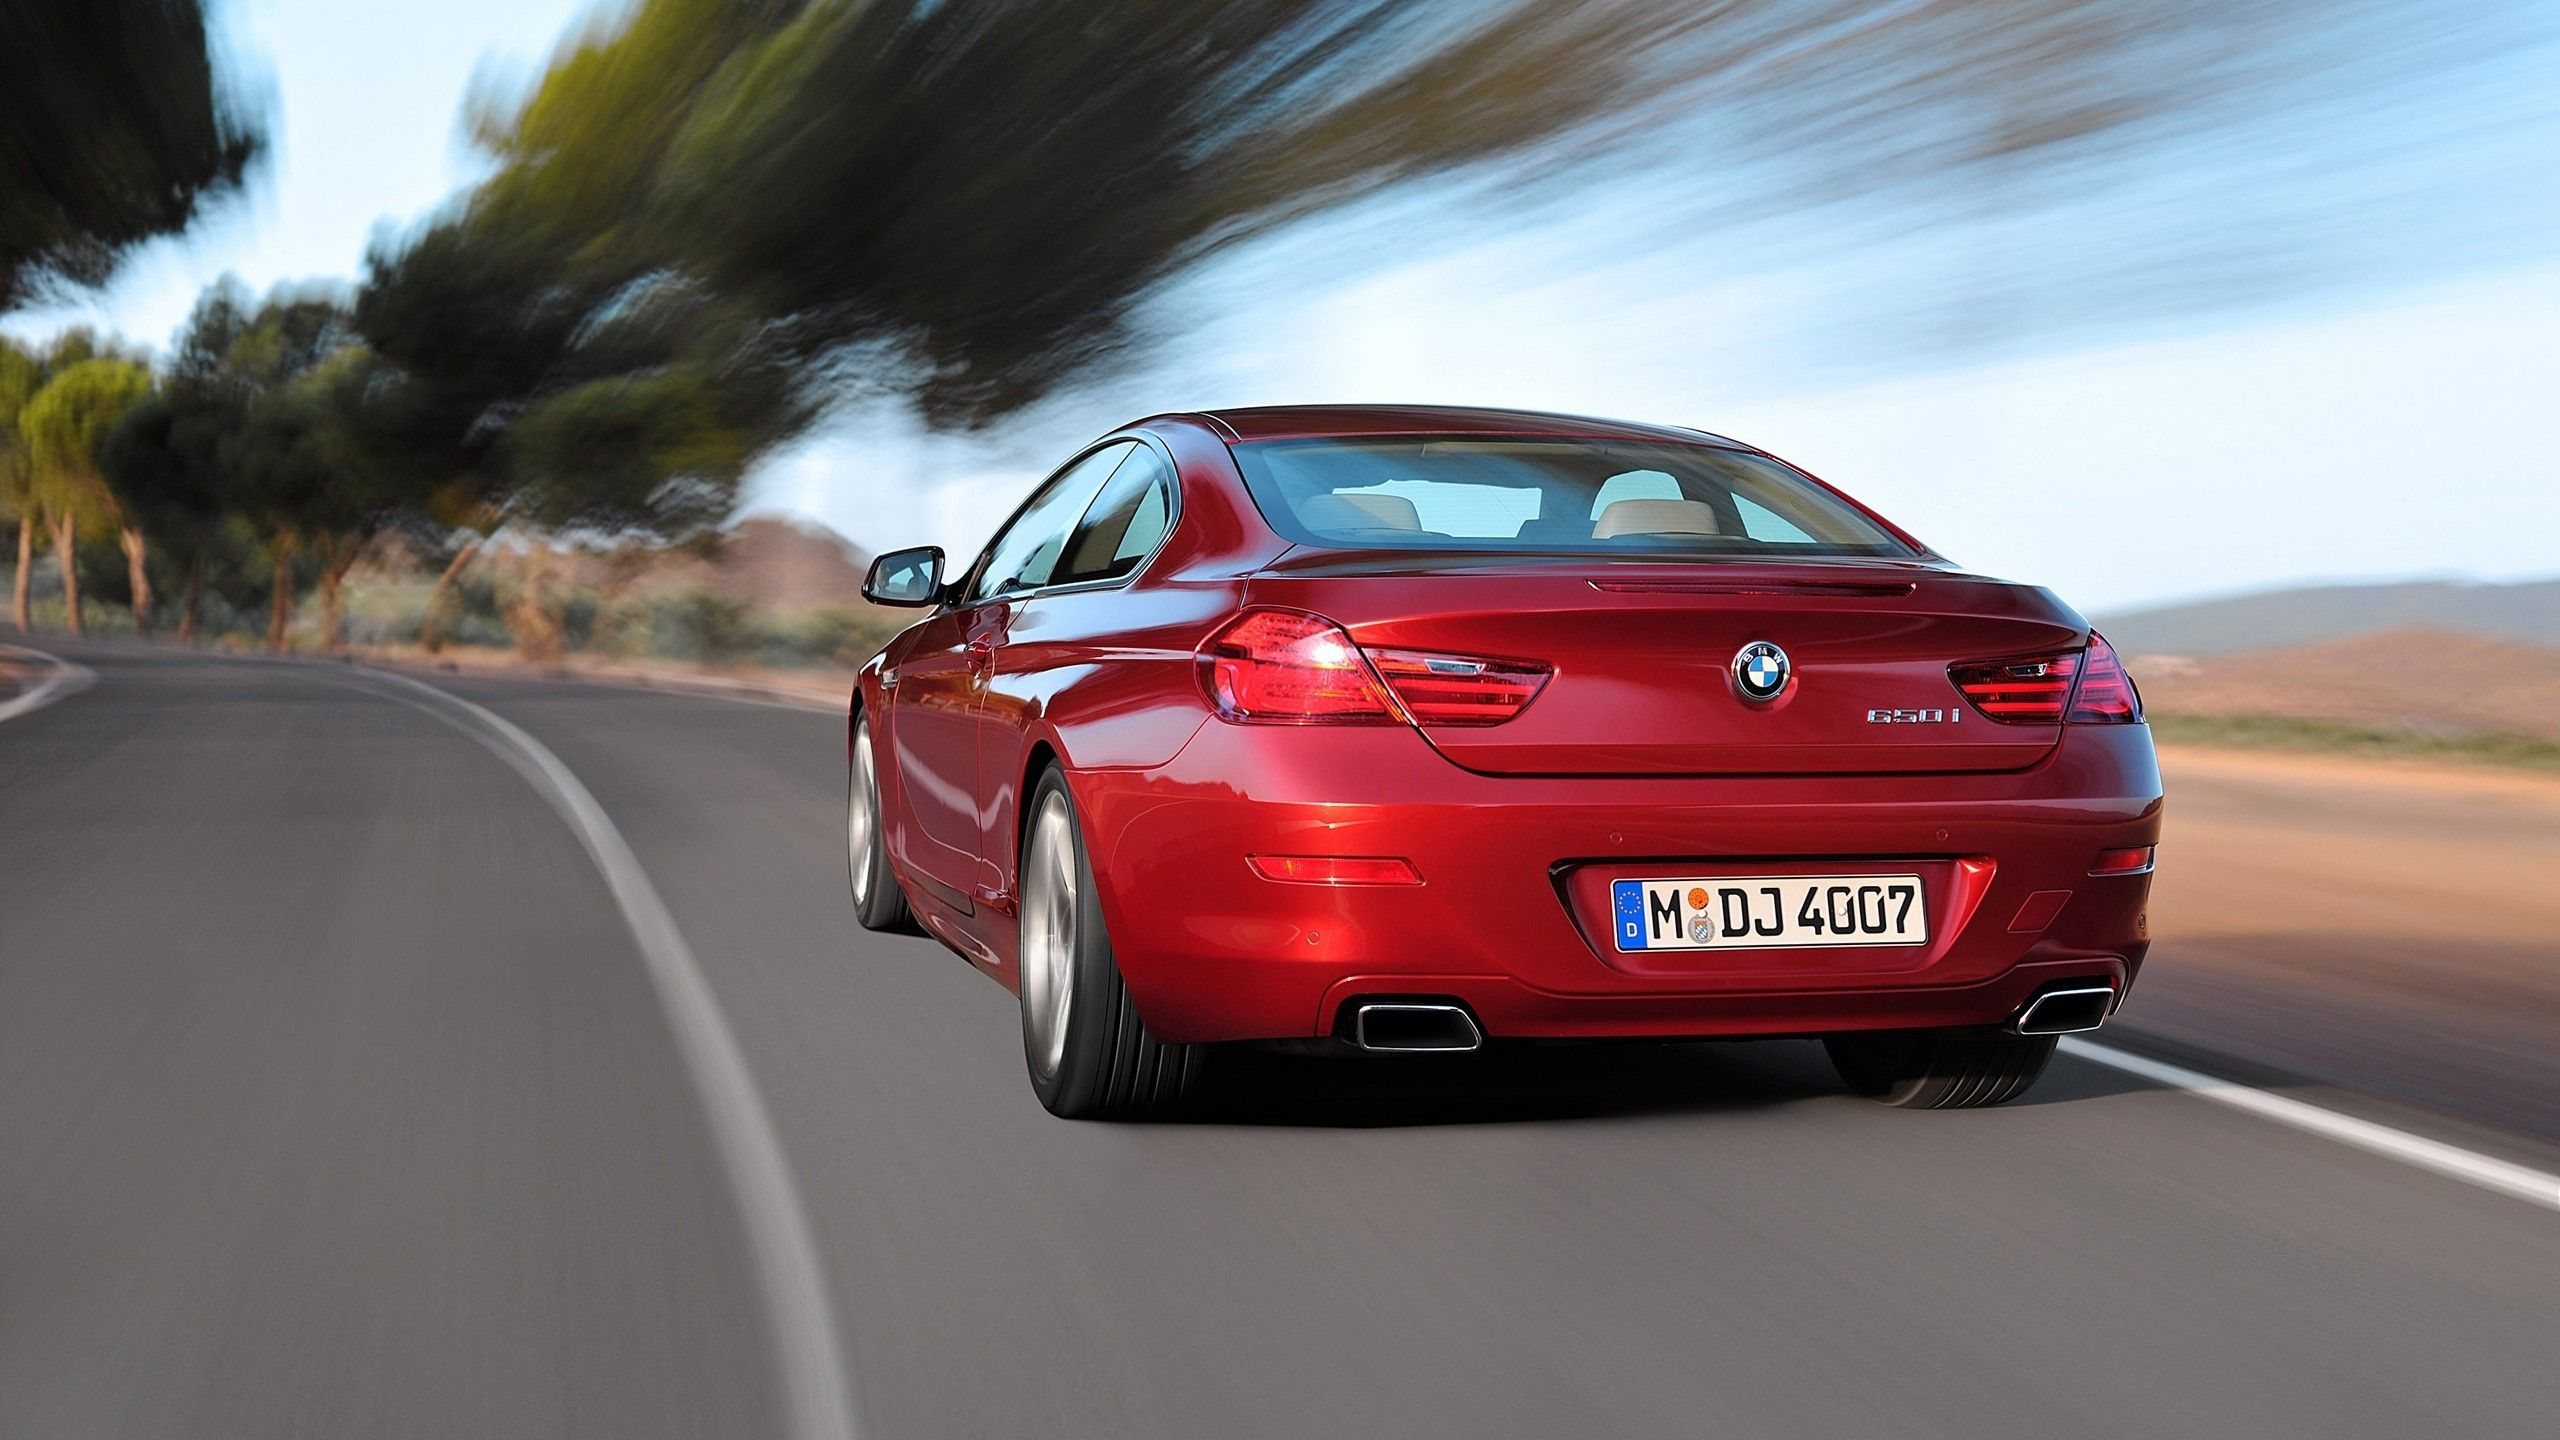 Bmw 6 series 650i coupe wallpaper | Bmw 6 series, Bmw, Coupe